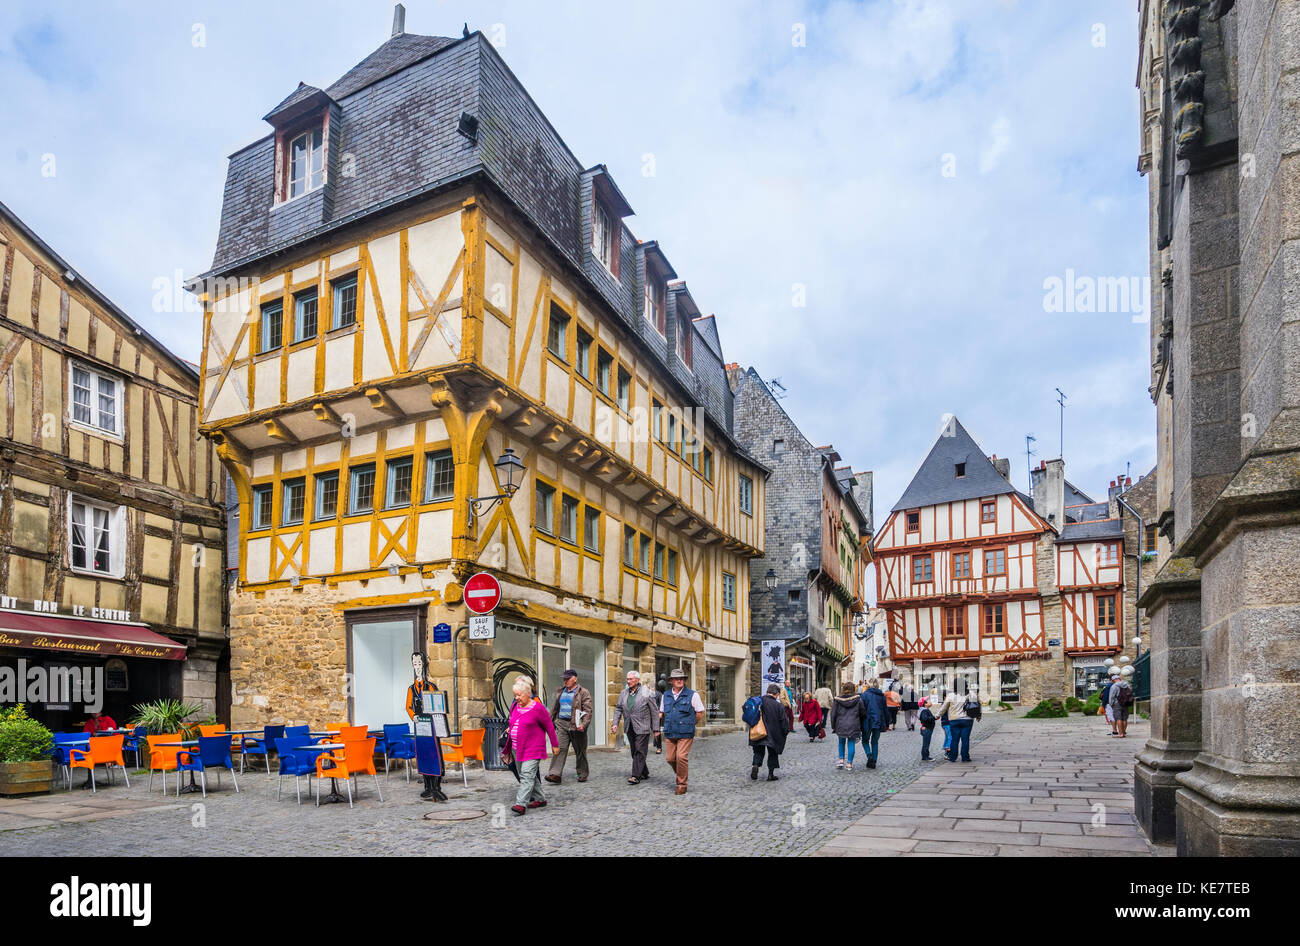 France, Brittany, Morbihan, Vannes, Place Saint-Pierre, Museum of the Cohue, a Fine Arts Museum in a medieval hall - Stock Image